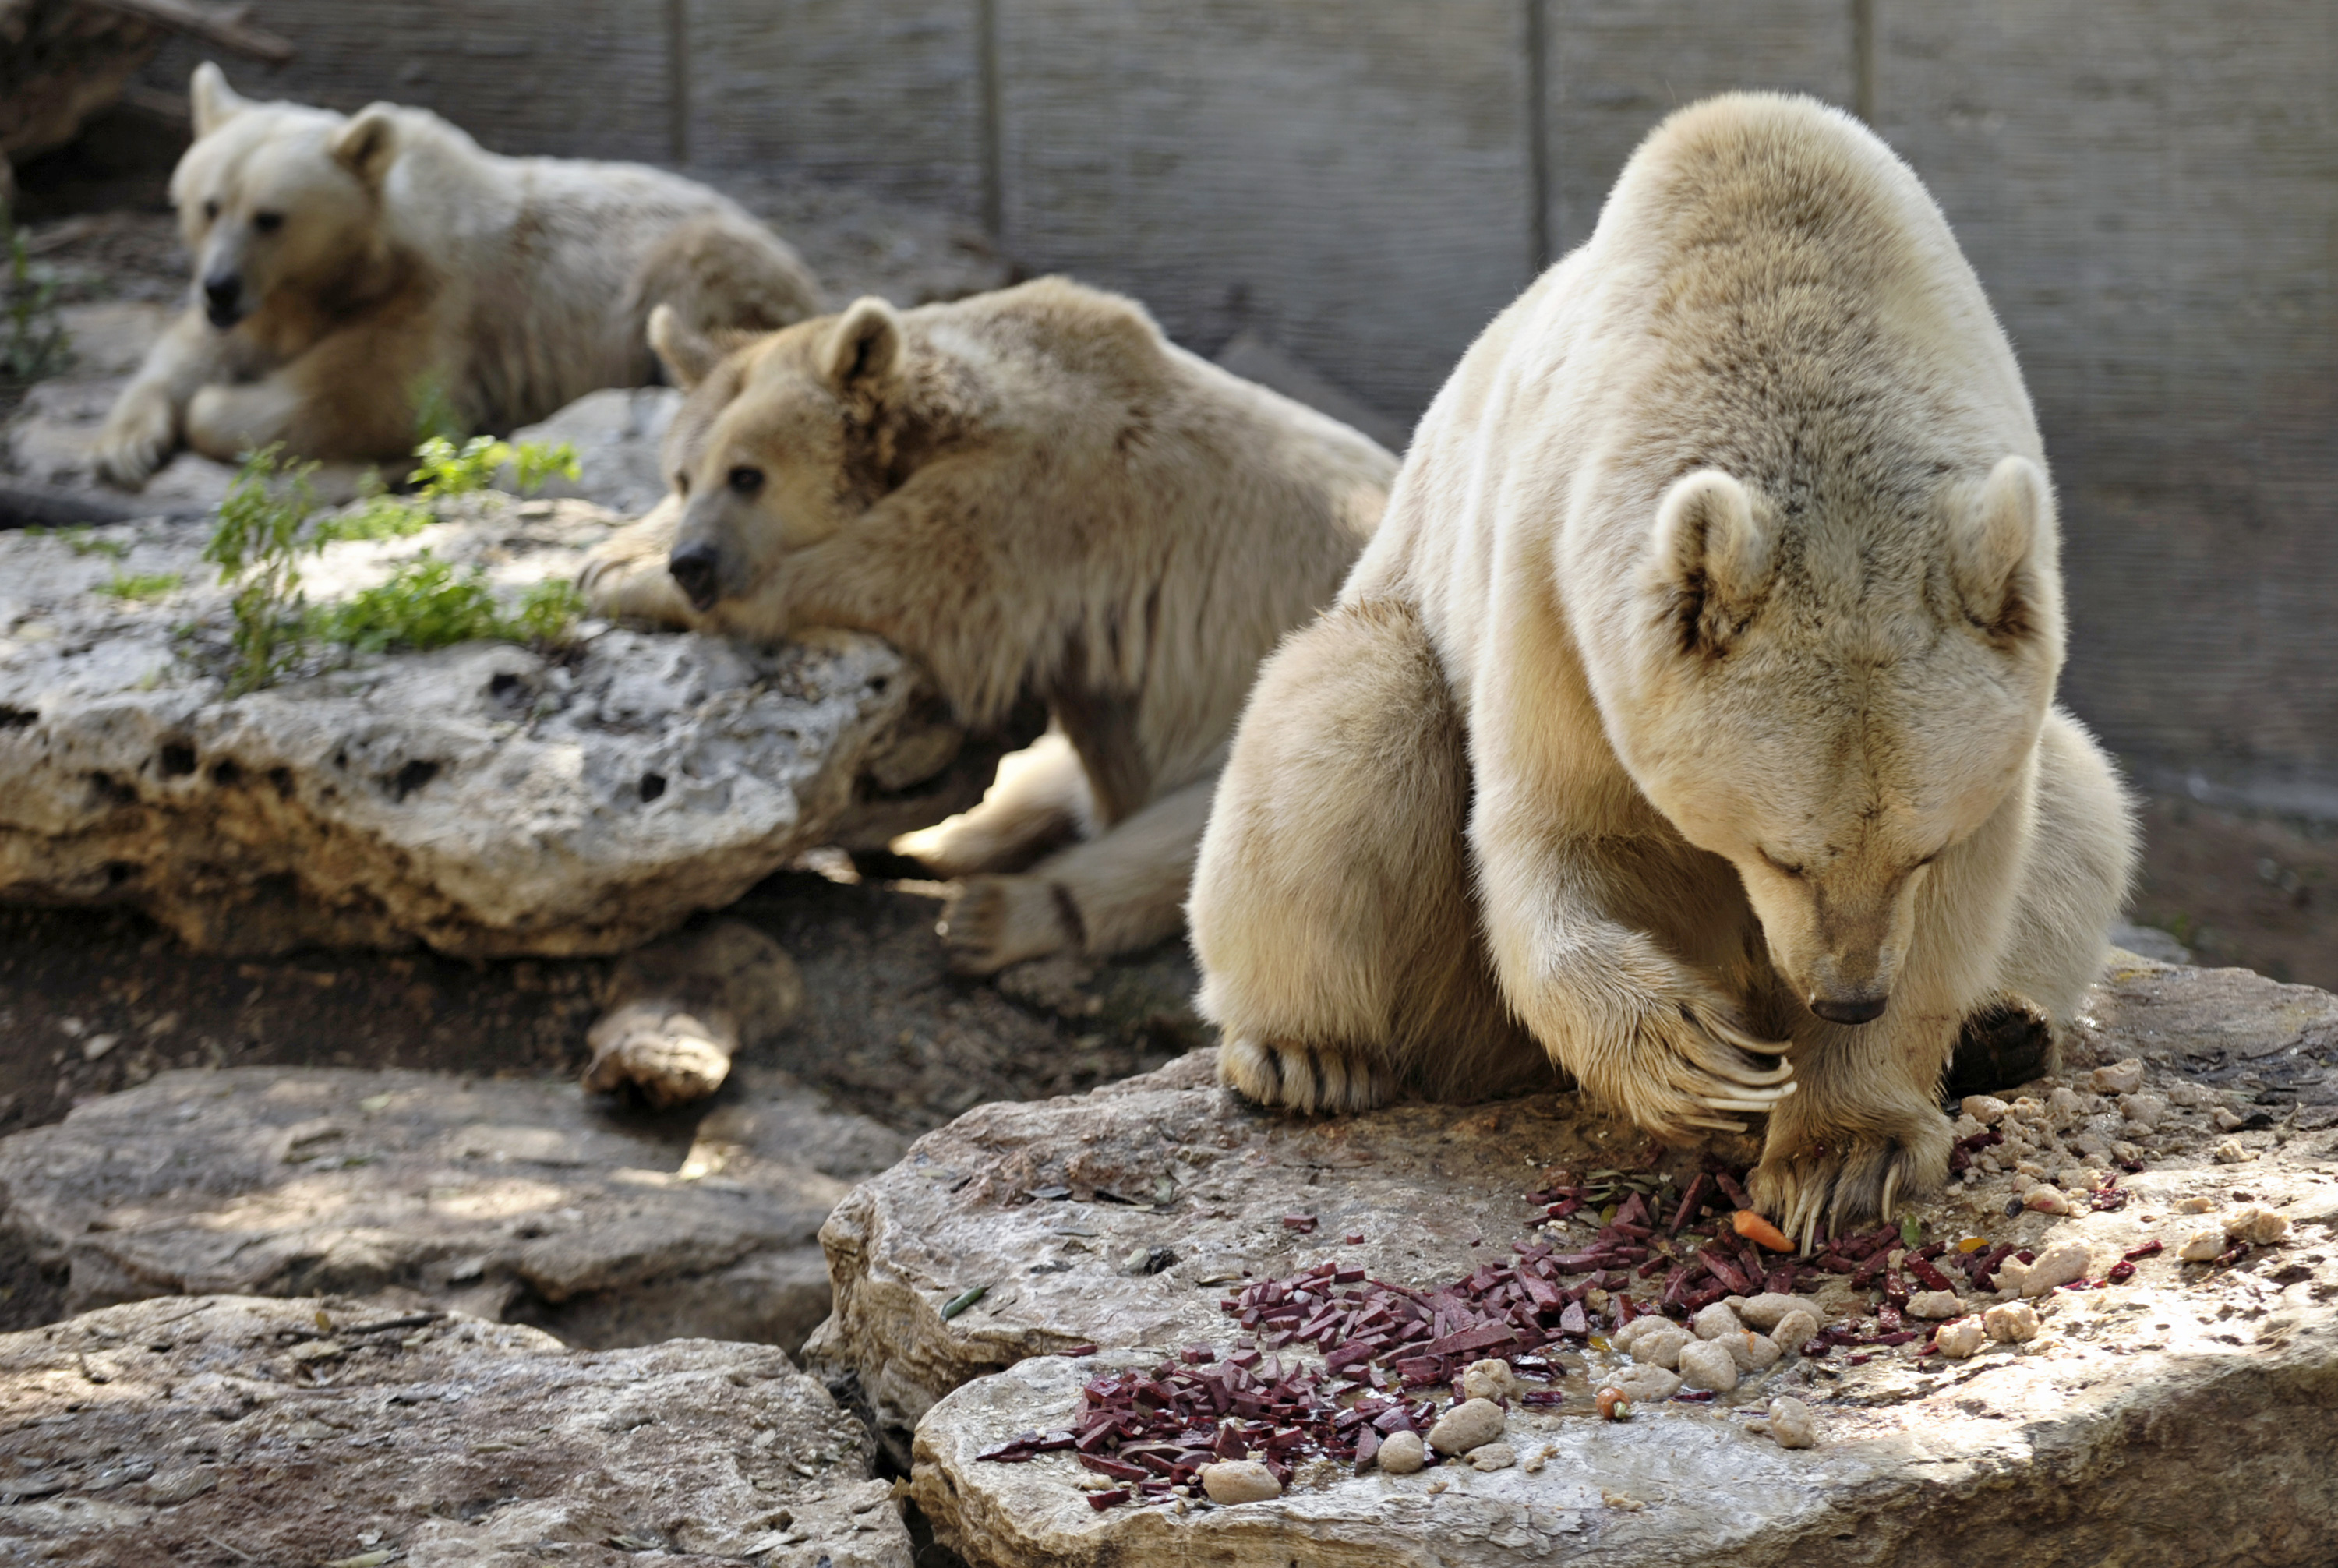 A Syrian brown bear eats the traditional gefilte fish in preparation for the Jewish holiday of Passover, at the Ramat Gan Safari Park near Tel Aviv in 2009 (Amir Cohen/REUTERS)